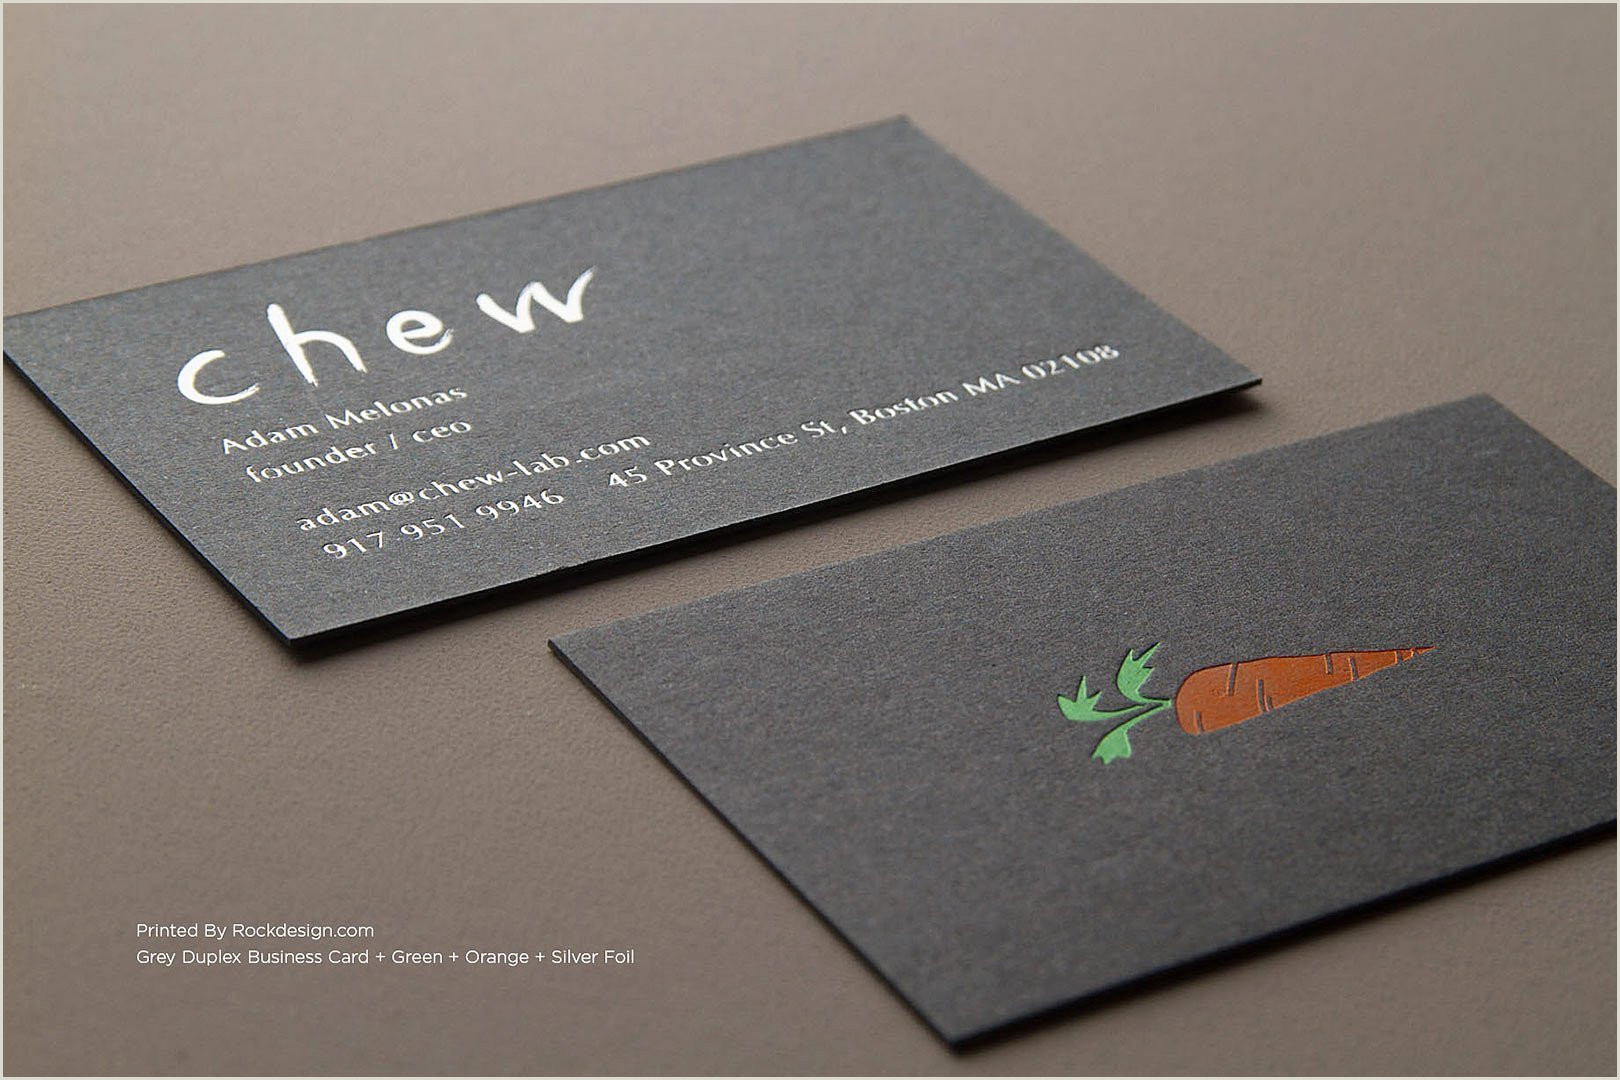 Best Business Cards For Restaurants Awesome Restaurant Business Card Design